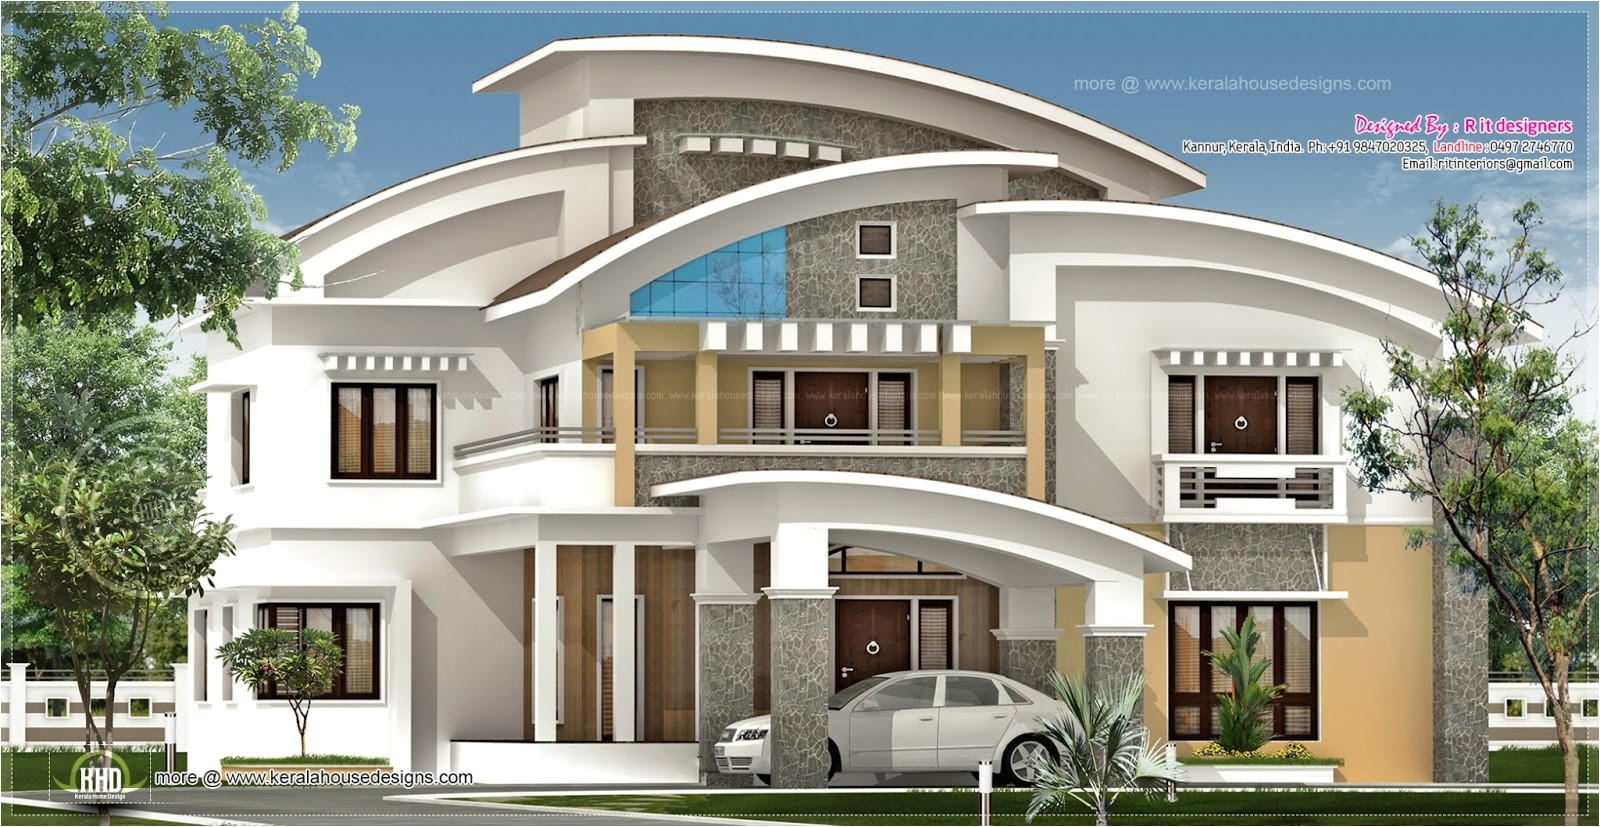 3750 square feet luxury villa exterior